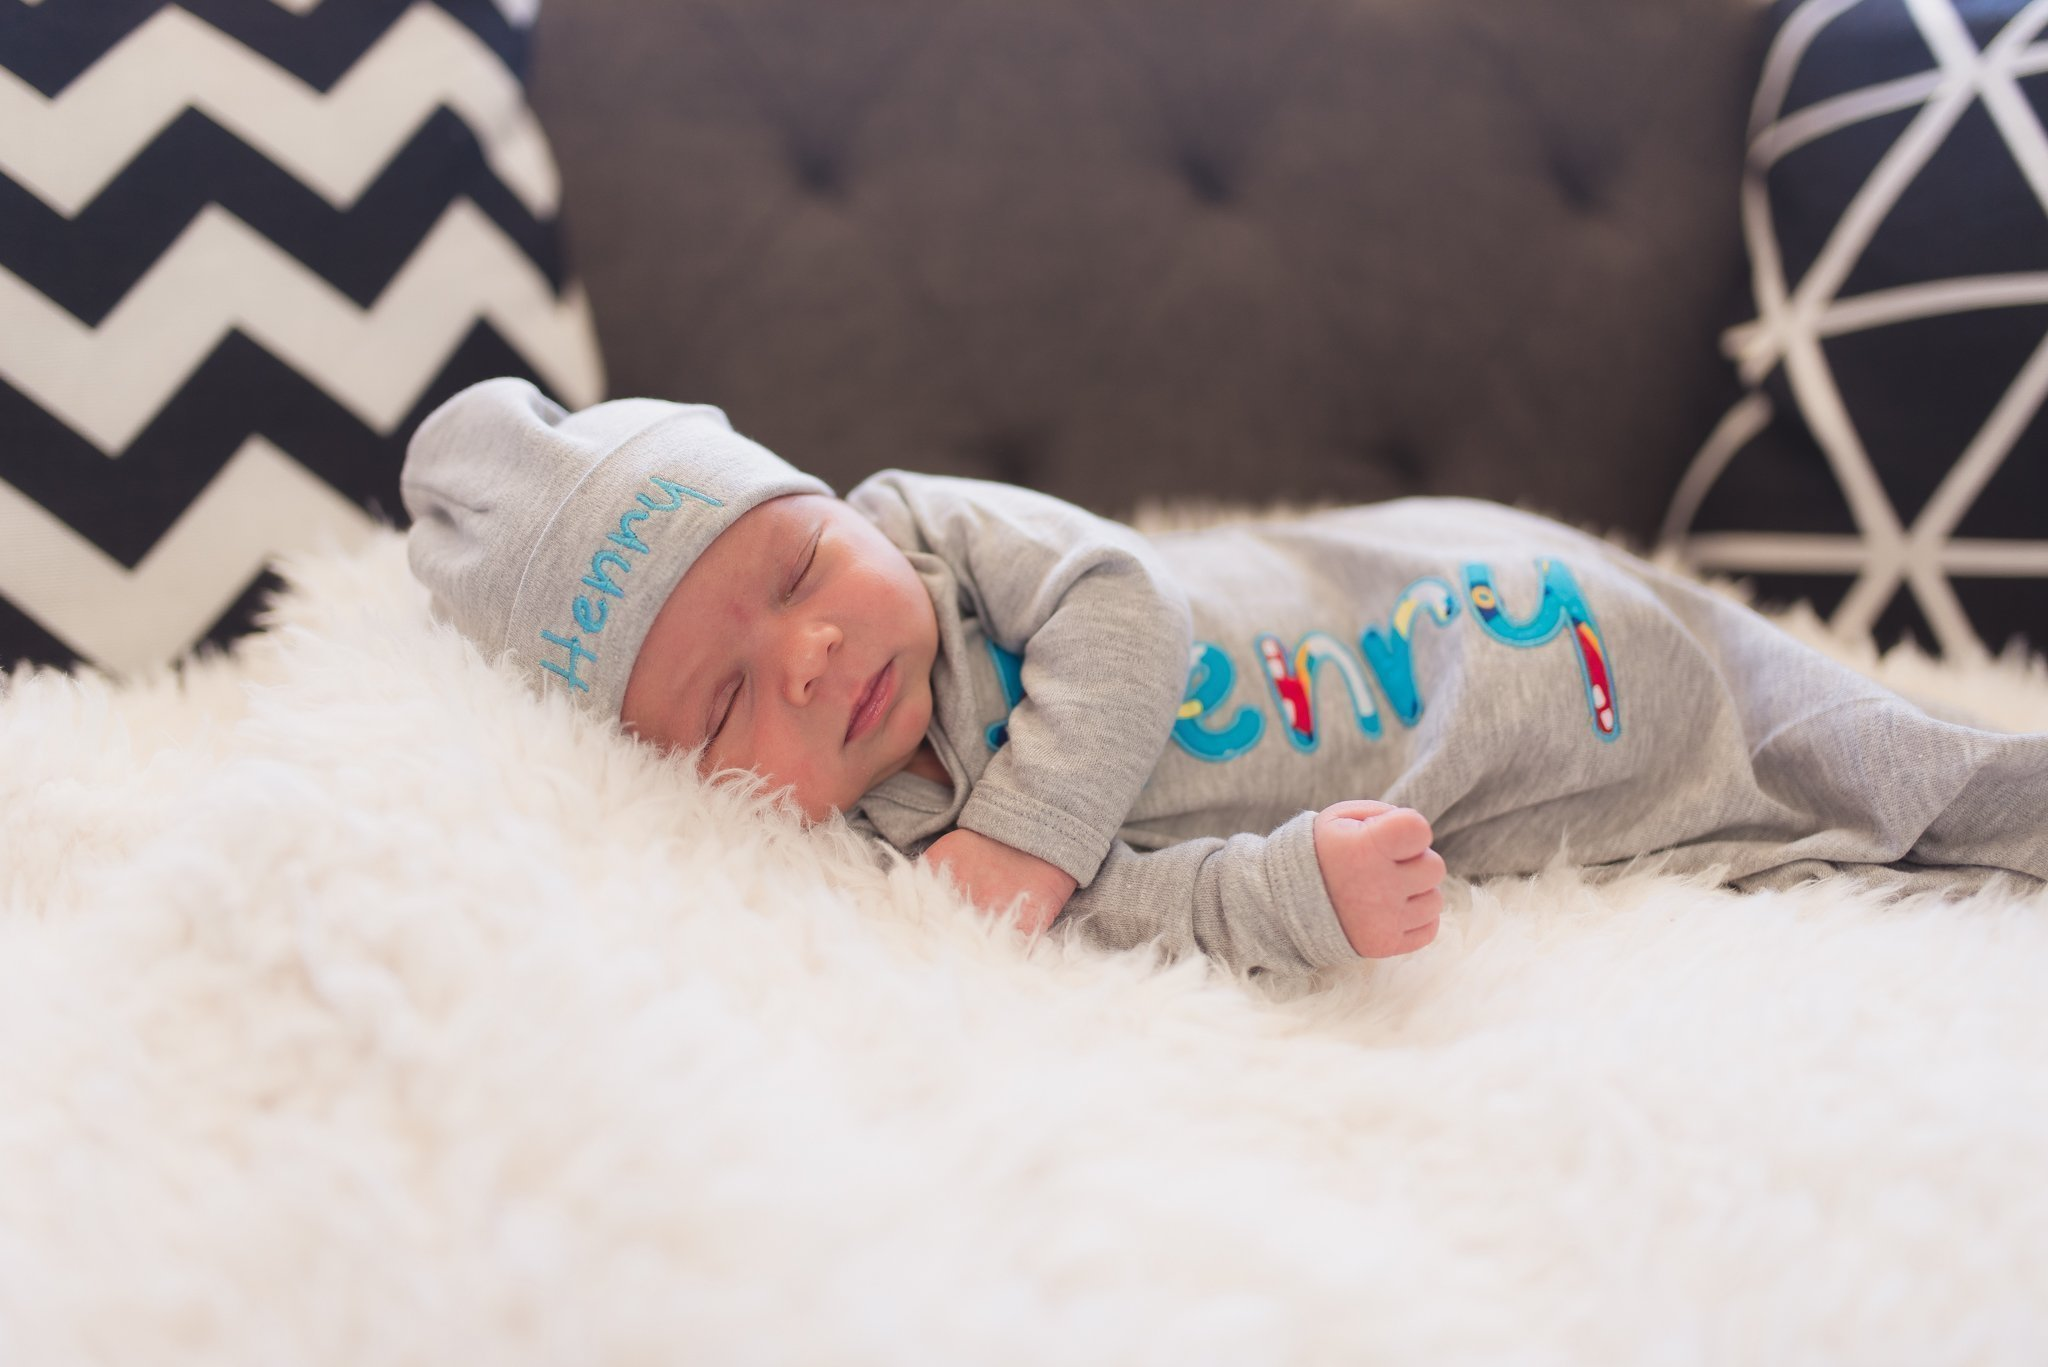 Baby Boy Turquoise Plane Personalized Coming Home outfit